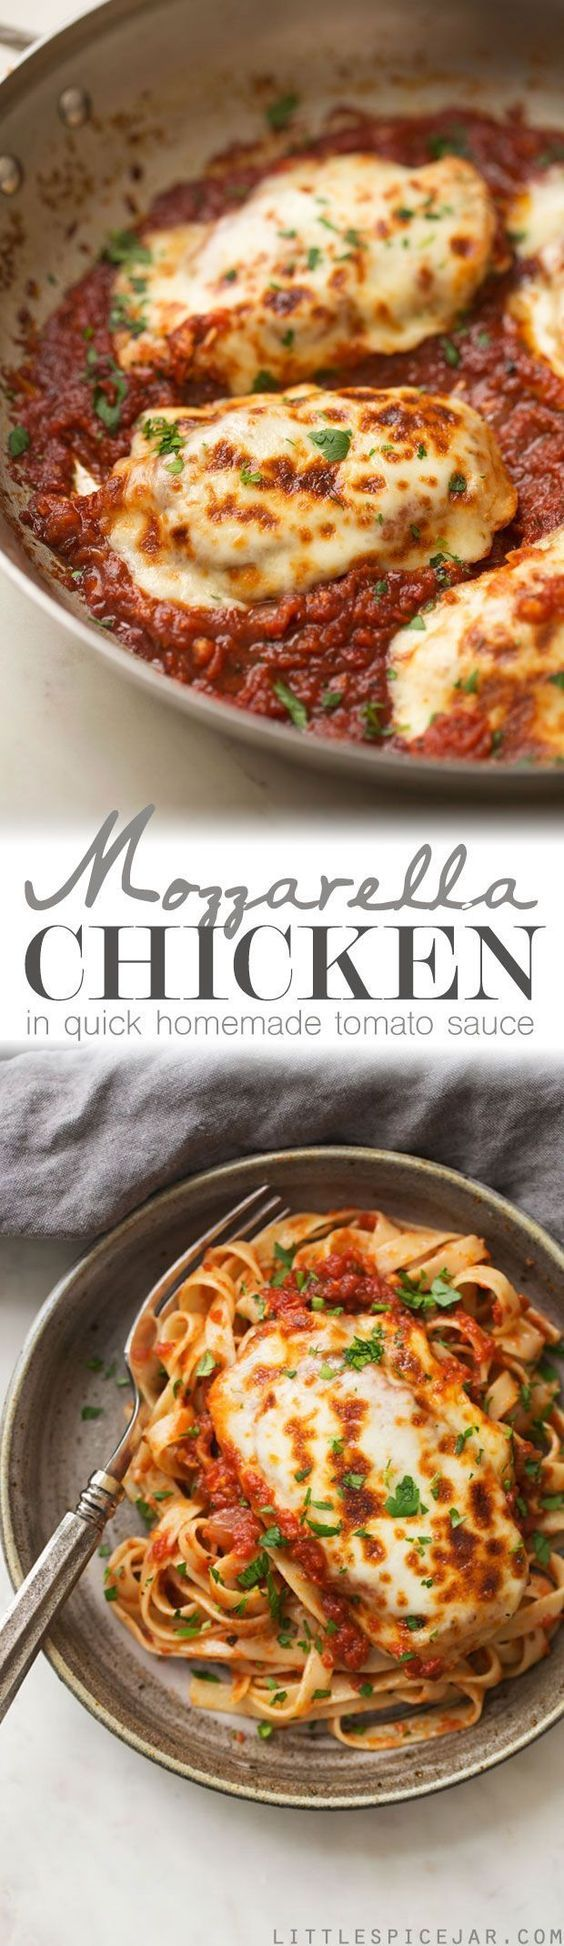 30 Minute Mozzarella Chicken in Tomato Sauce - a quick and easy weeknight recipe for chicken smothered in tomato sauce with melty mozzarella! Serve with bread or pasta! #chickenmozzarella #chickenintomatosauce #mozzarellachicken #30minutemeals | Littlespicejar.com